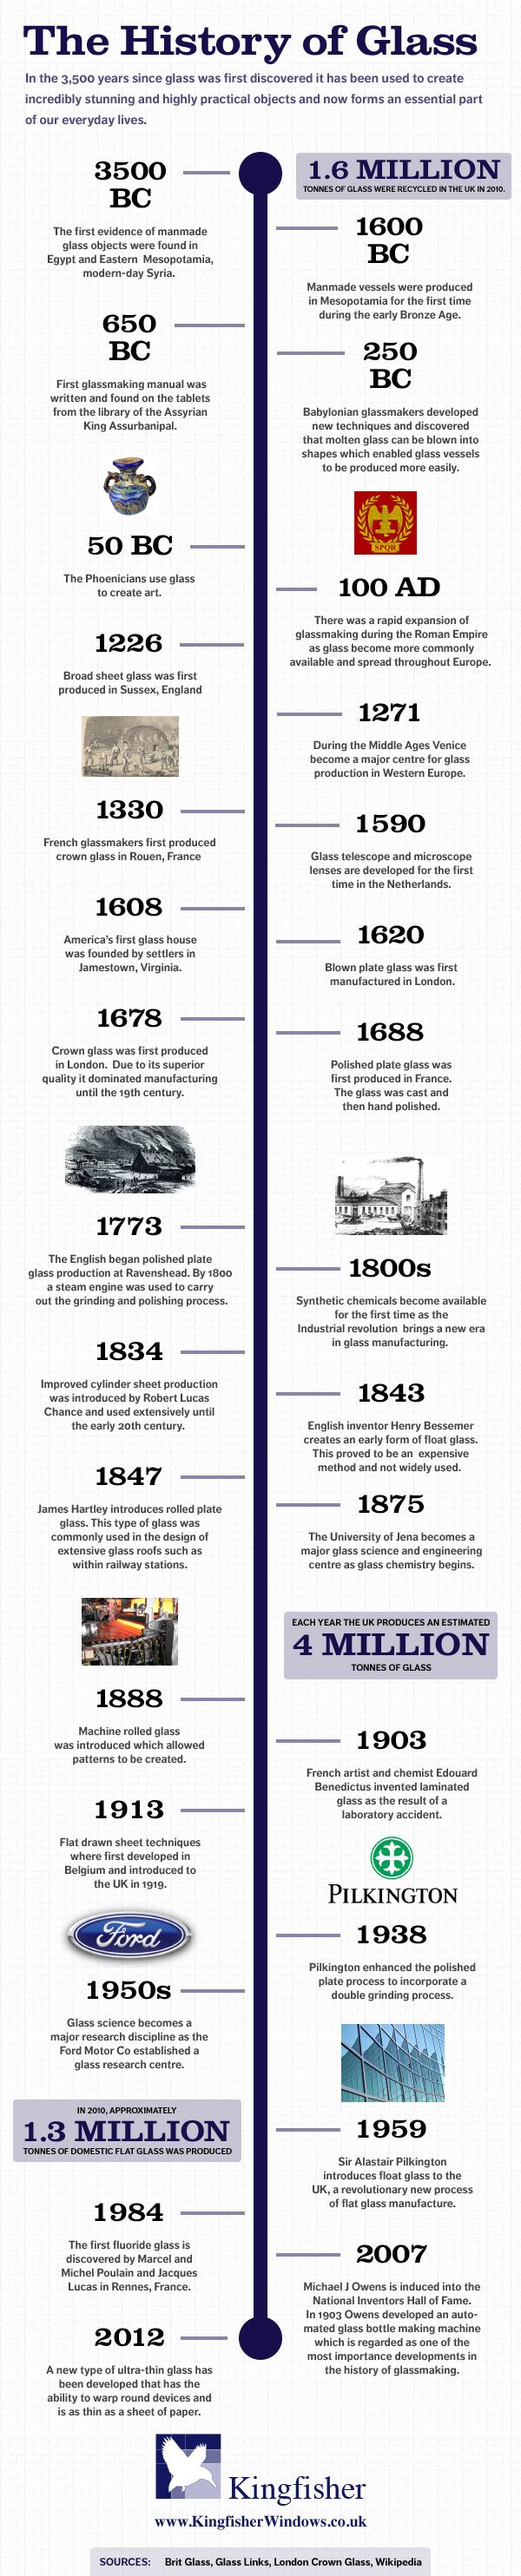 History of Glass Infographic